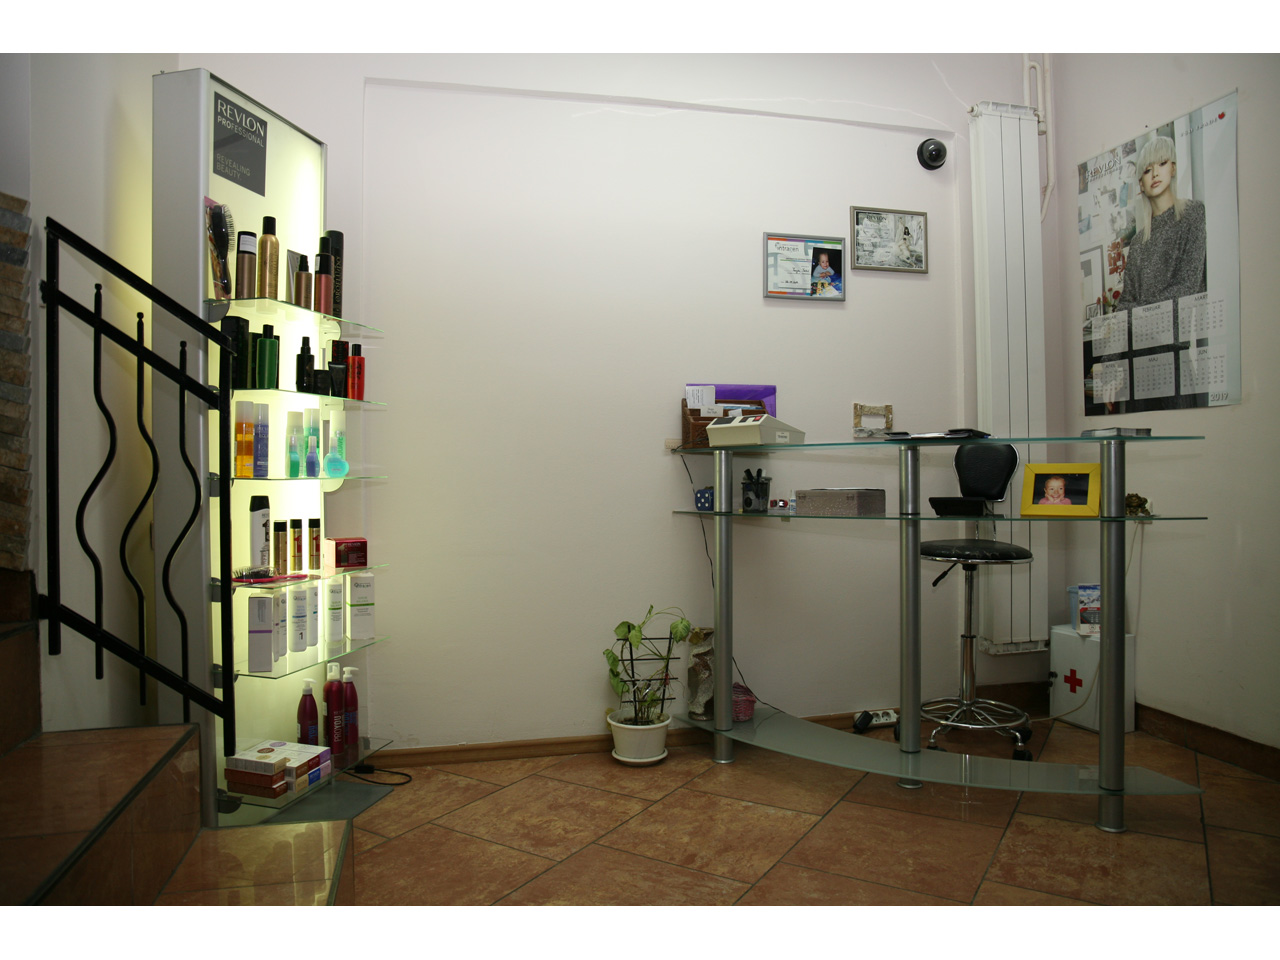 BUBI T - COSMETIC AND HAIRDRESSING SALON Hairdressers Beograd